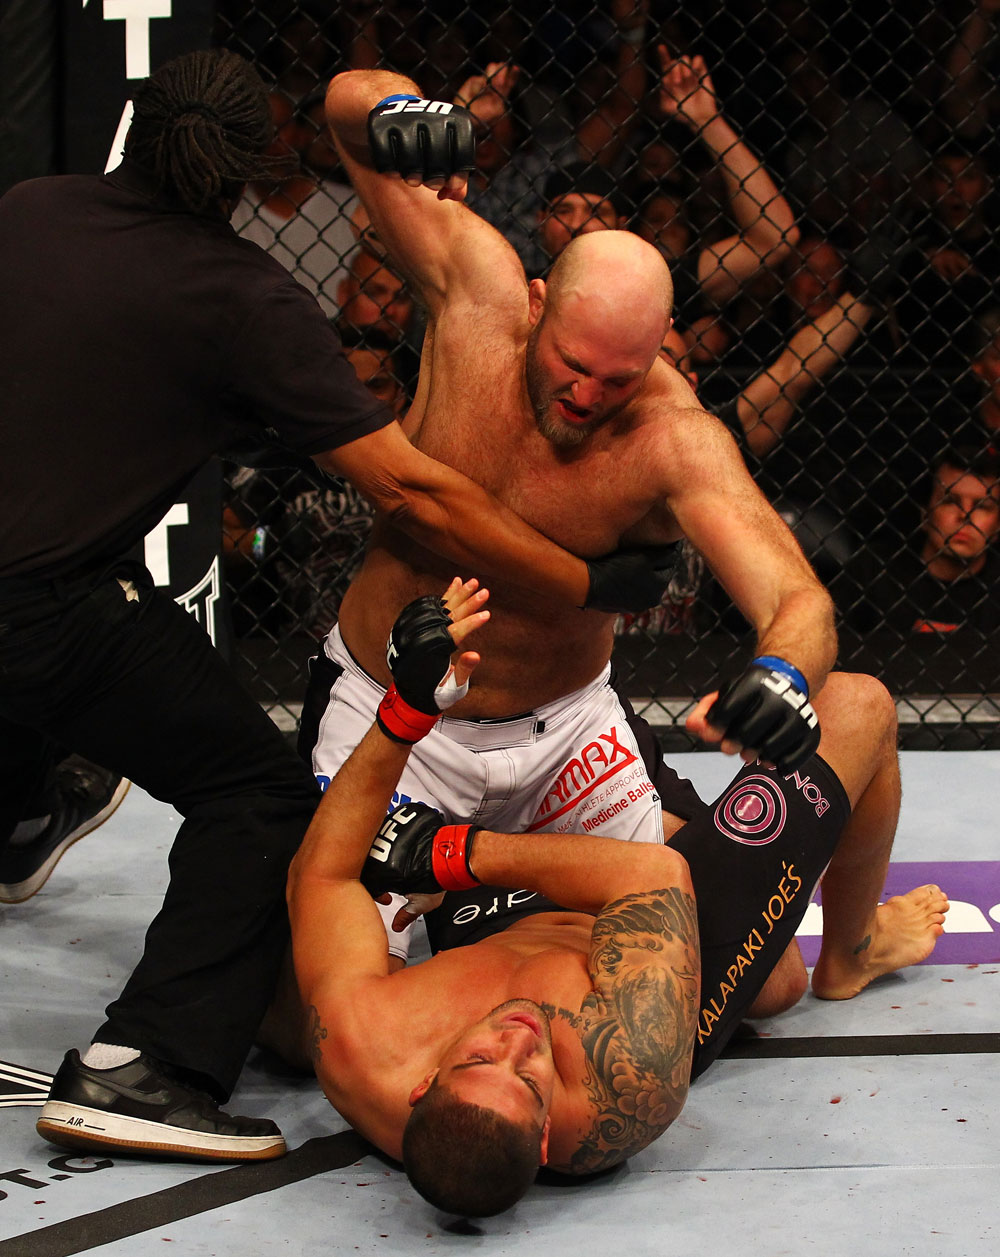 ATLANTA, GA - APRIL 21:  The official stops the fight as Ben Rothwell (top) punches Brendan Schaub during their heavyweight bout for UFC 145 at Philips Arena on April 21, 2012 in Atlanta, Georgia.  (Photo by Al Bello/Zuffa LLC/Zuffa LLC via Getty Images)